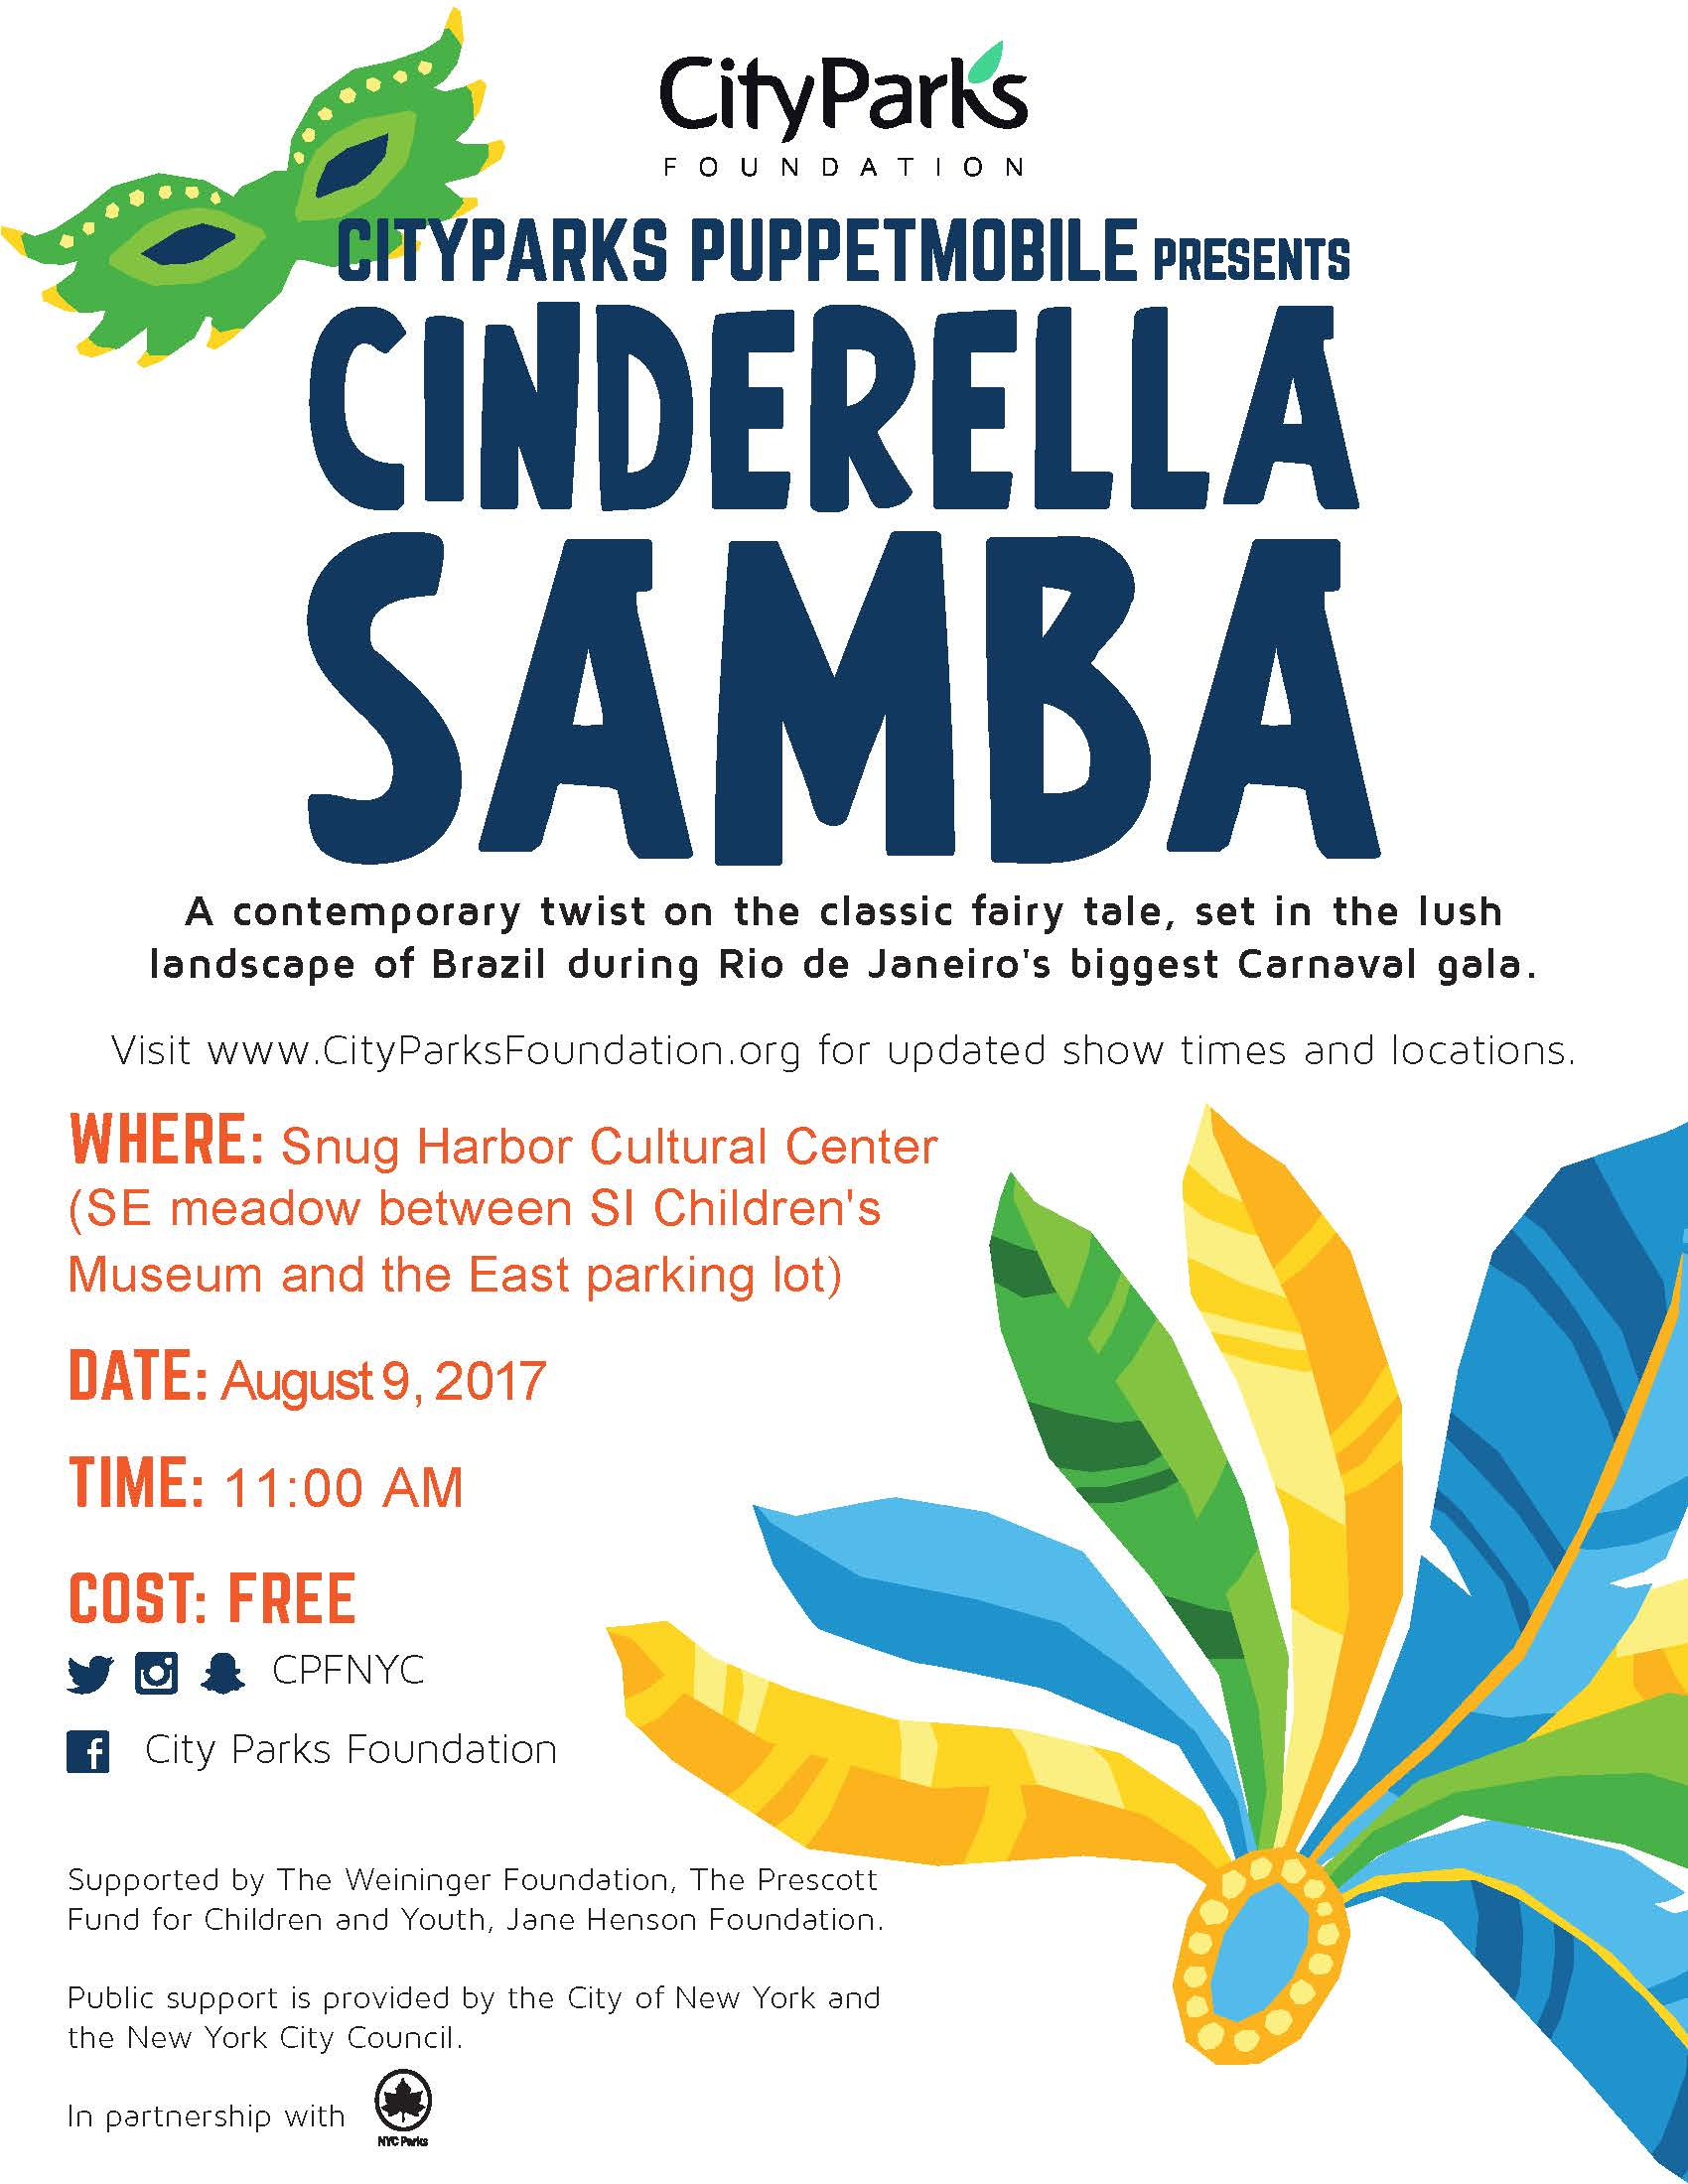 City Parks Puppet Mobile presents: Cinderella Samba @ East Meadow